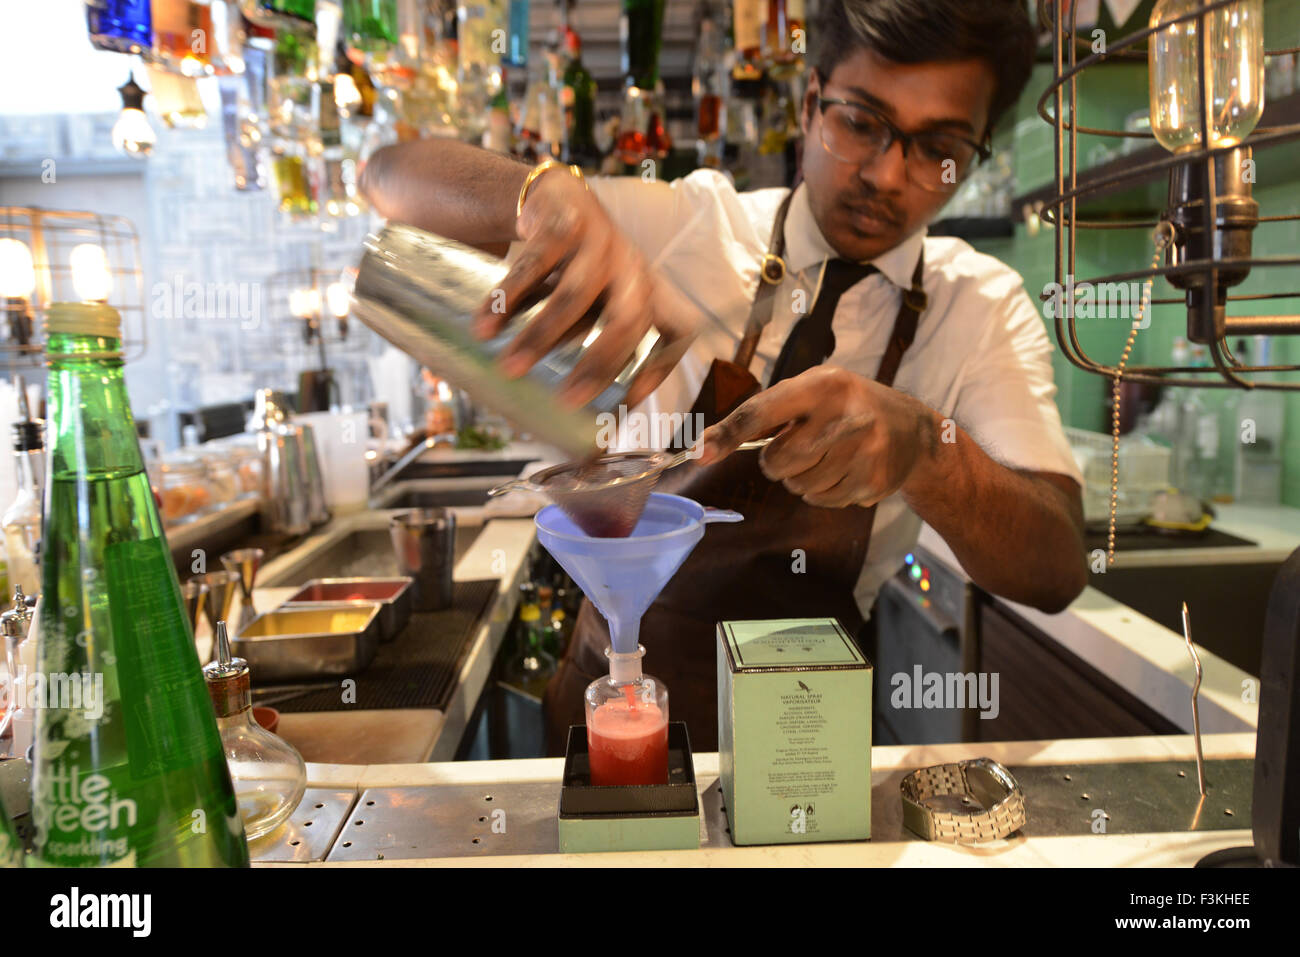 Mixing up cocktails at the Tippling Club cocktail bar in Singapore. - Stock Image